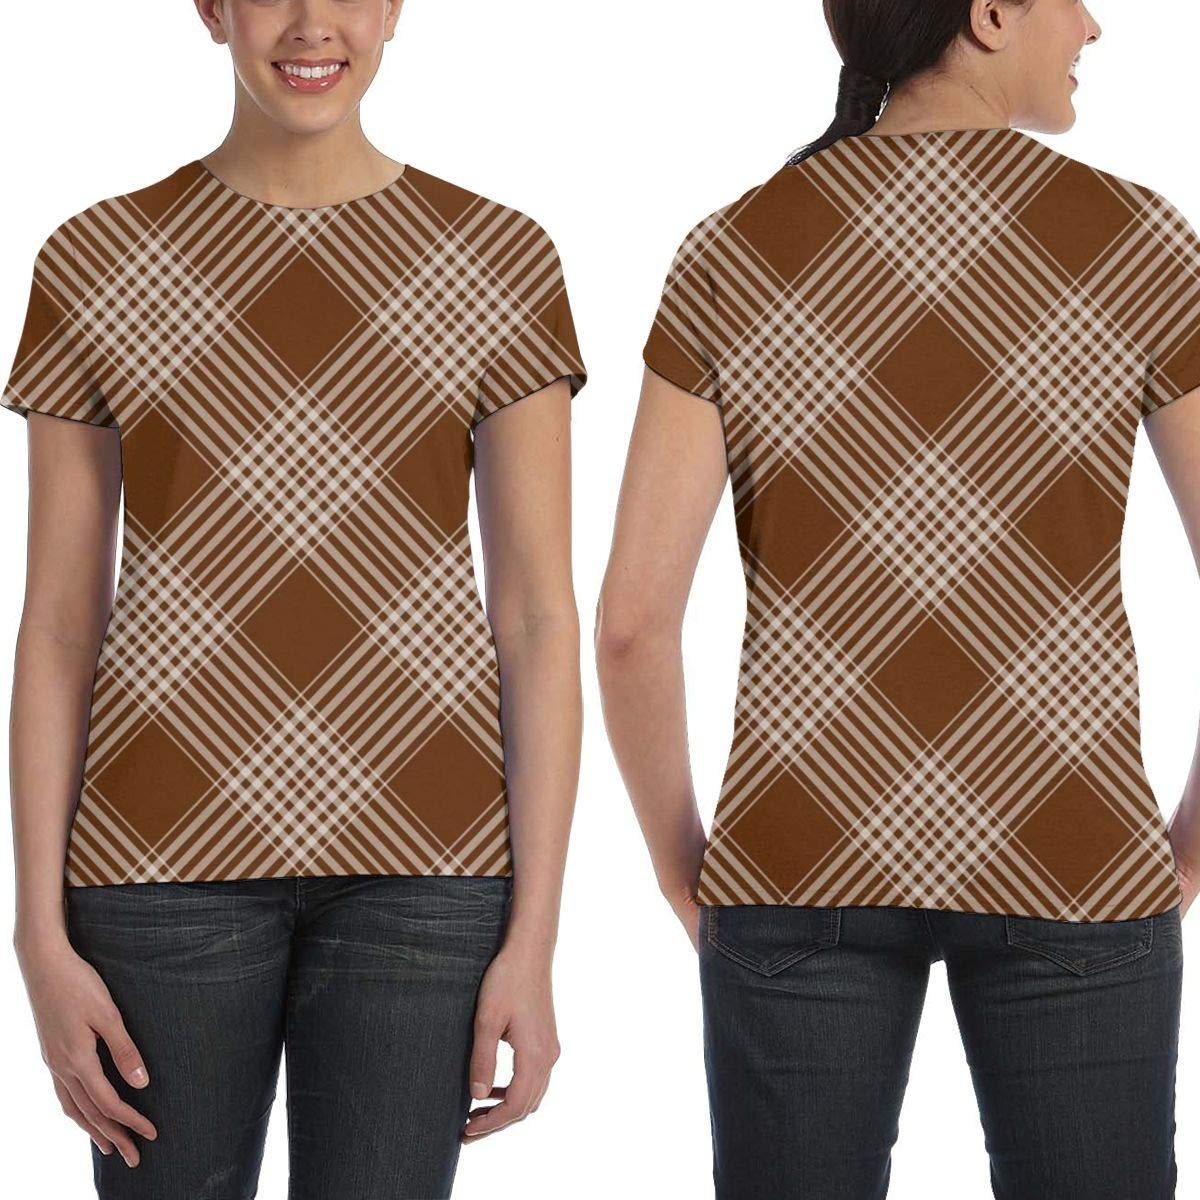 Plaid Checks Background Brown Womens Fashion Round Neck Loose Sports Casual T-Shirt Wild Short Sleeve